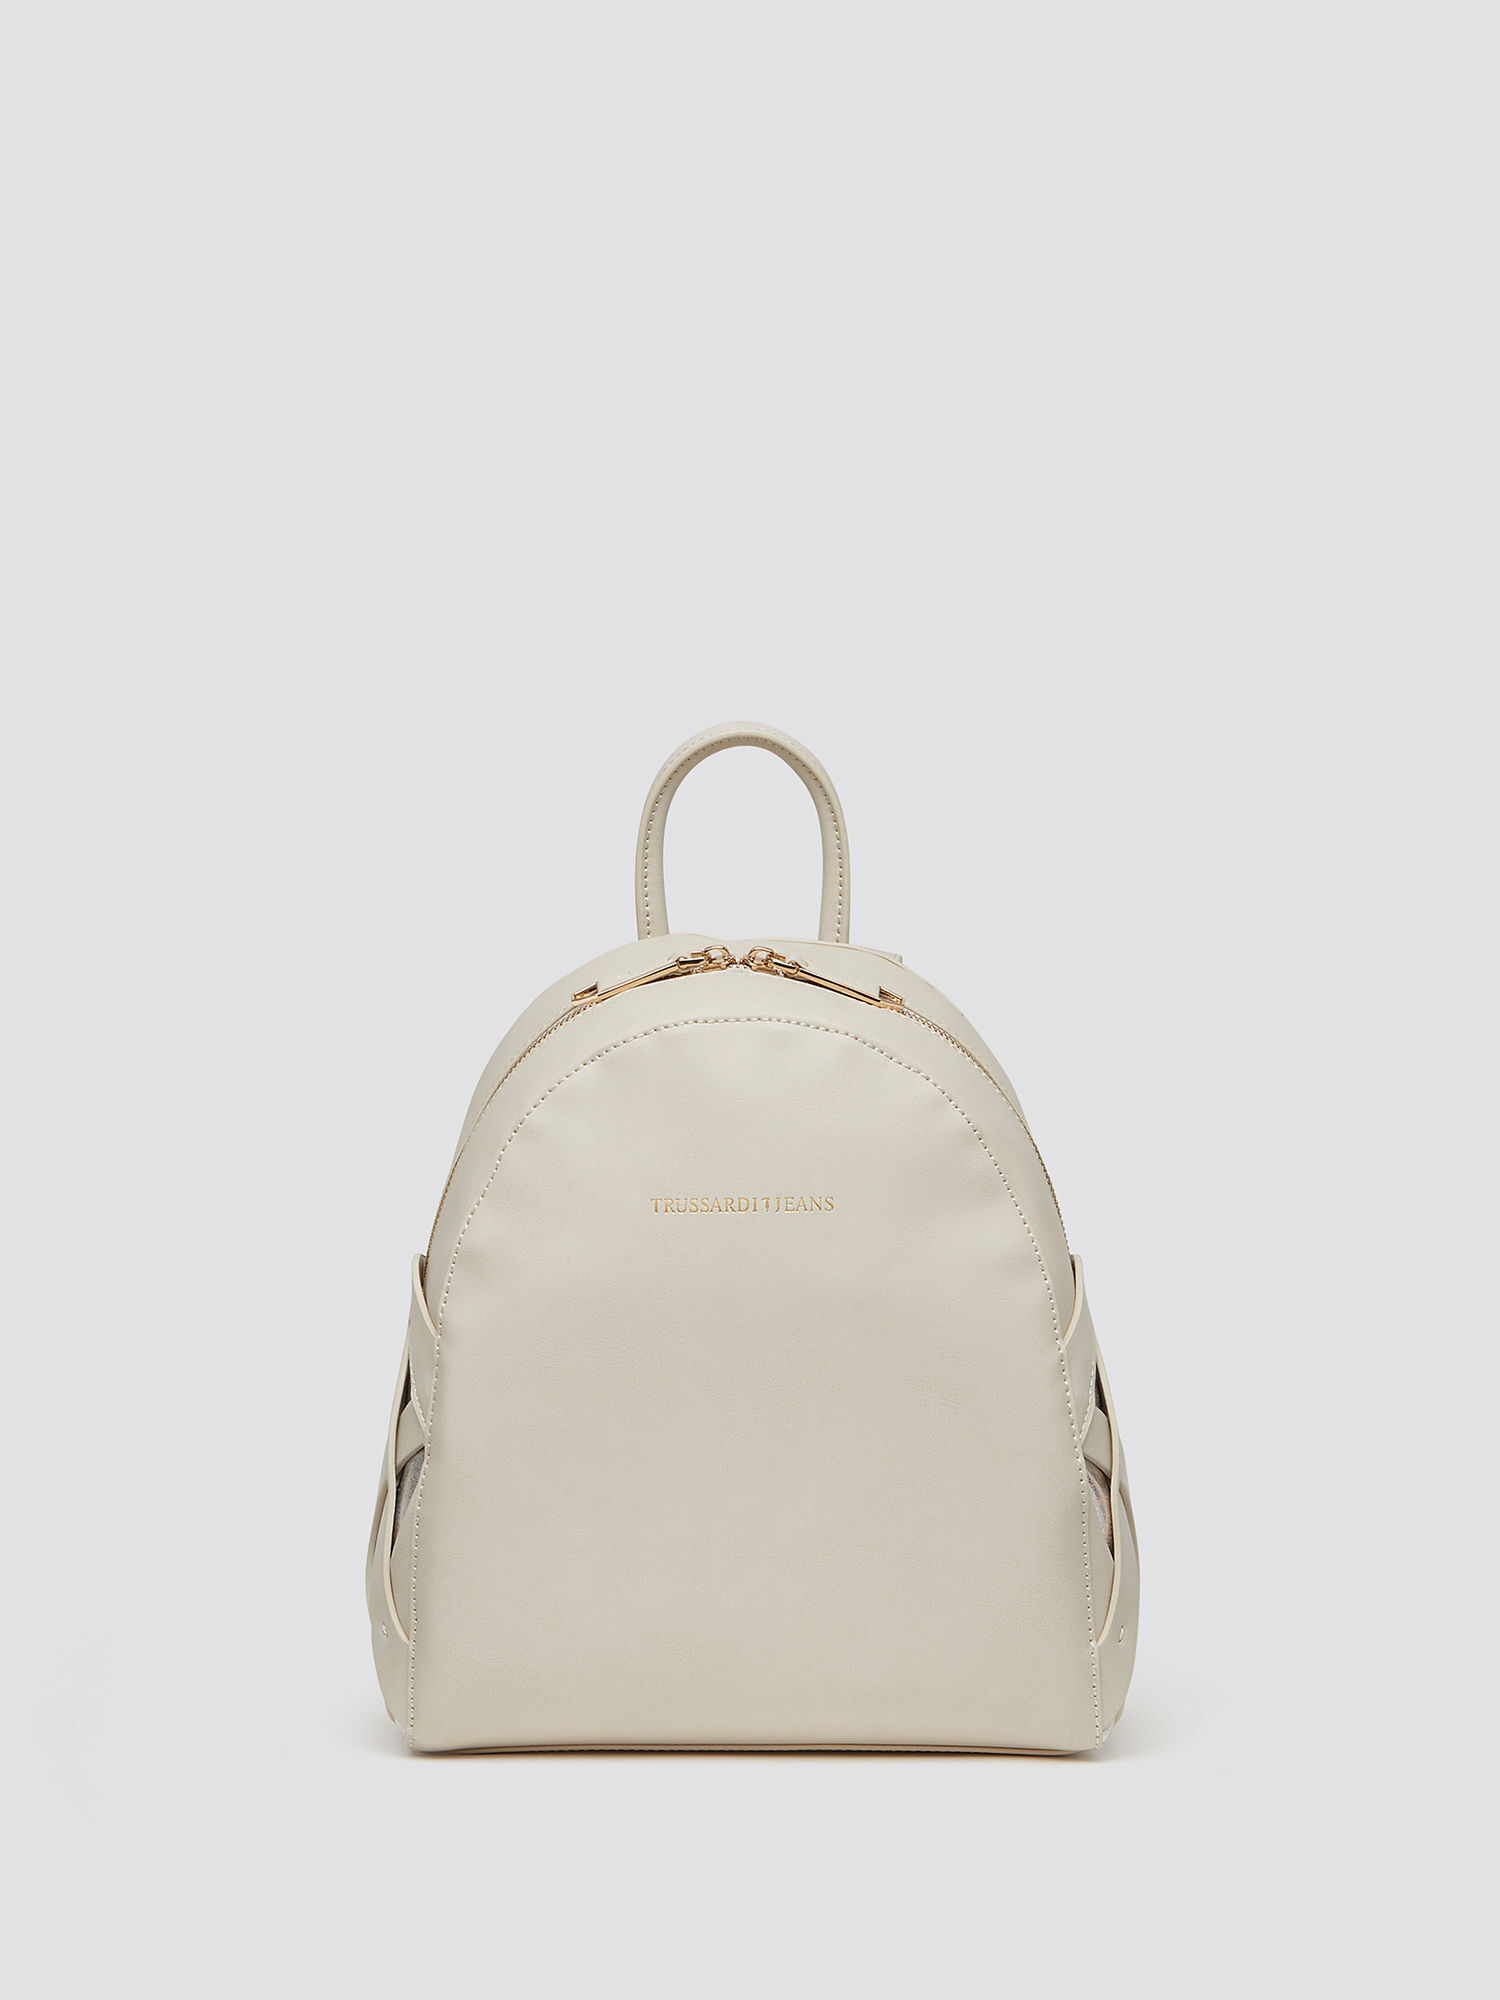 Dahlia rounded backpack with basket-weave detailing